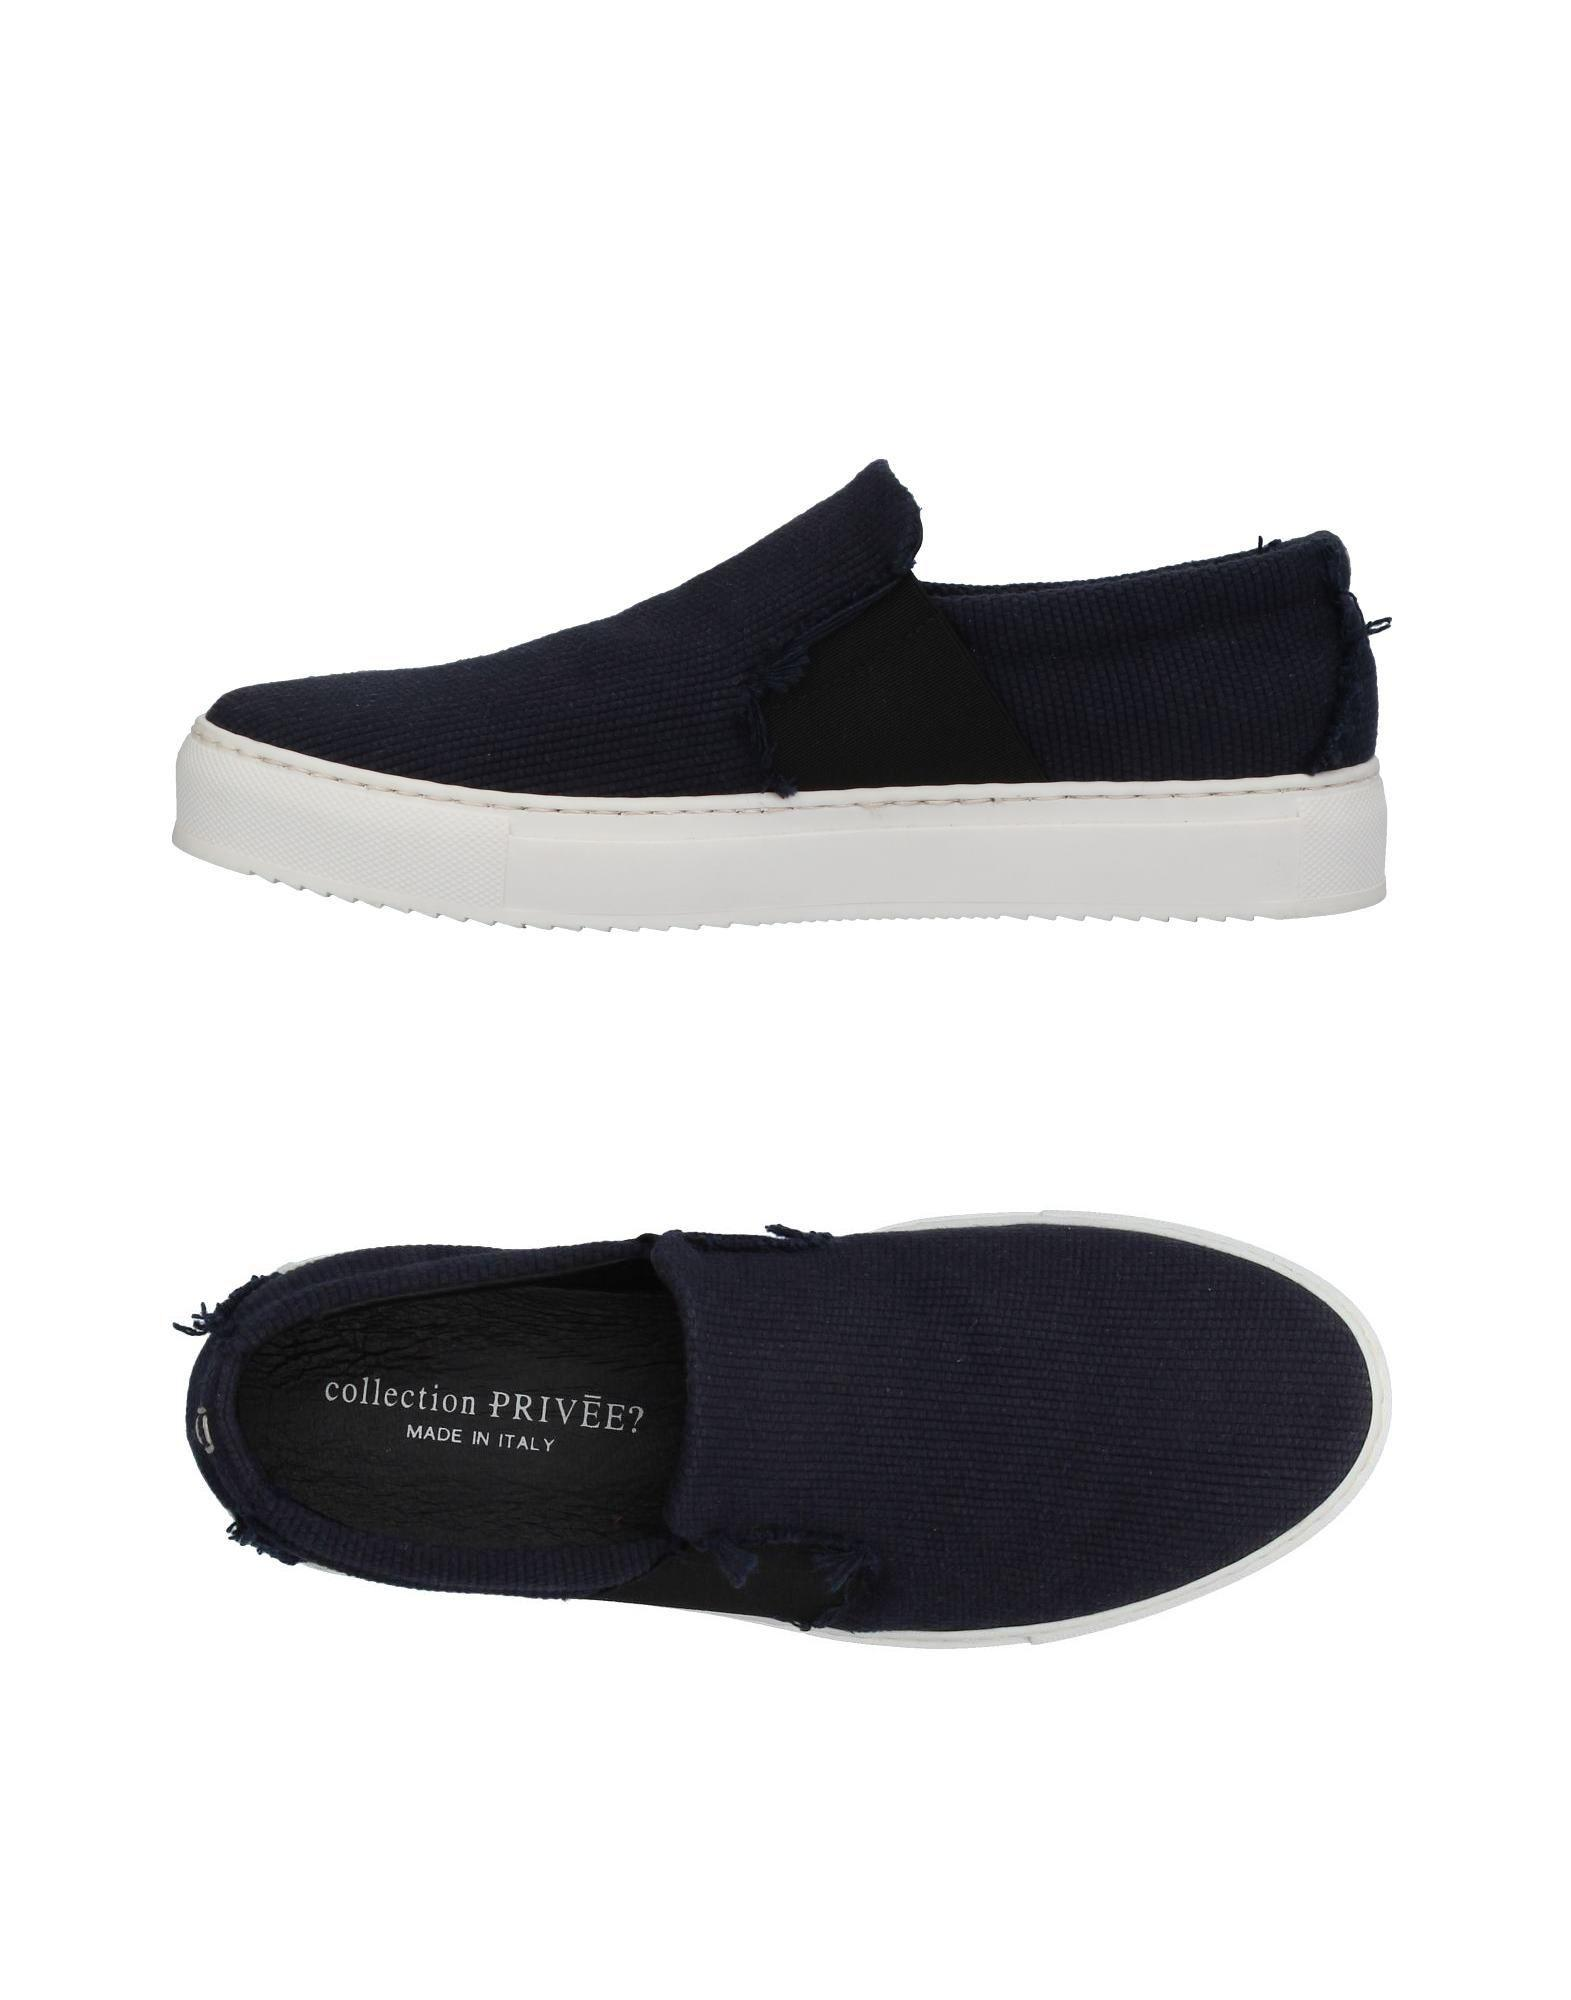 Collection Privēe? Collection Privee? Low-tops & Sneakers Bas-tops Et Chaussures De Sport tViosWV2hP